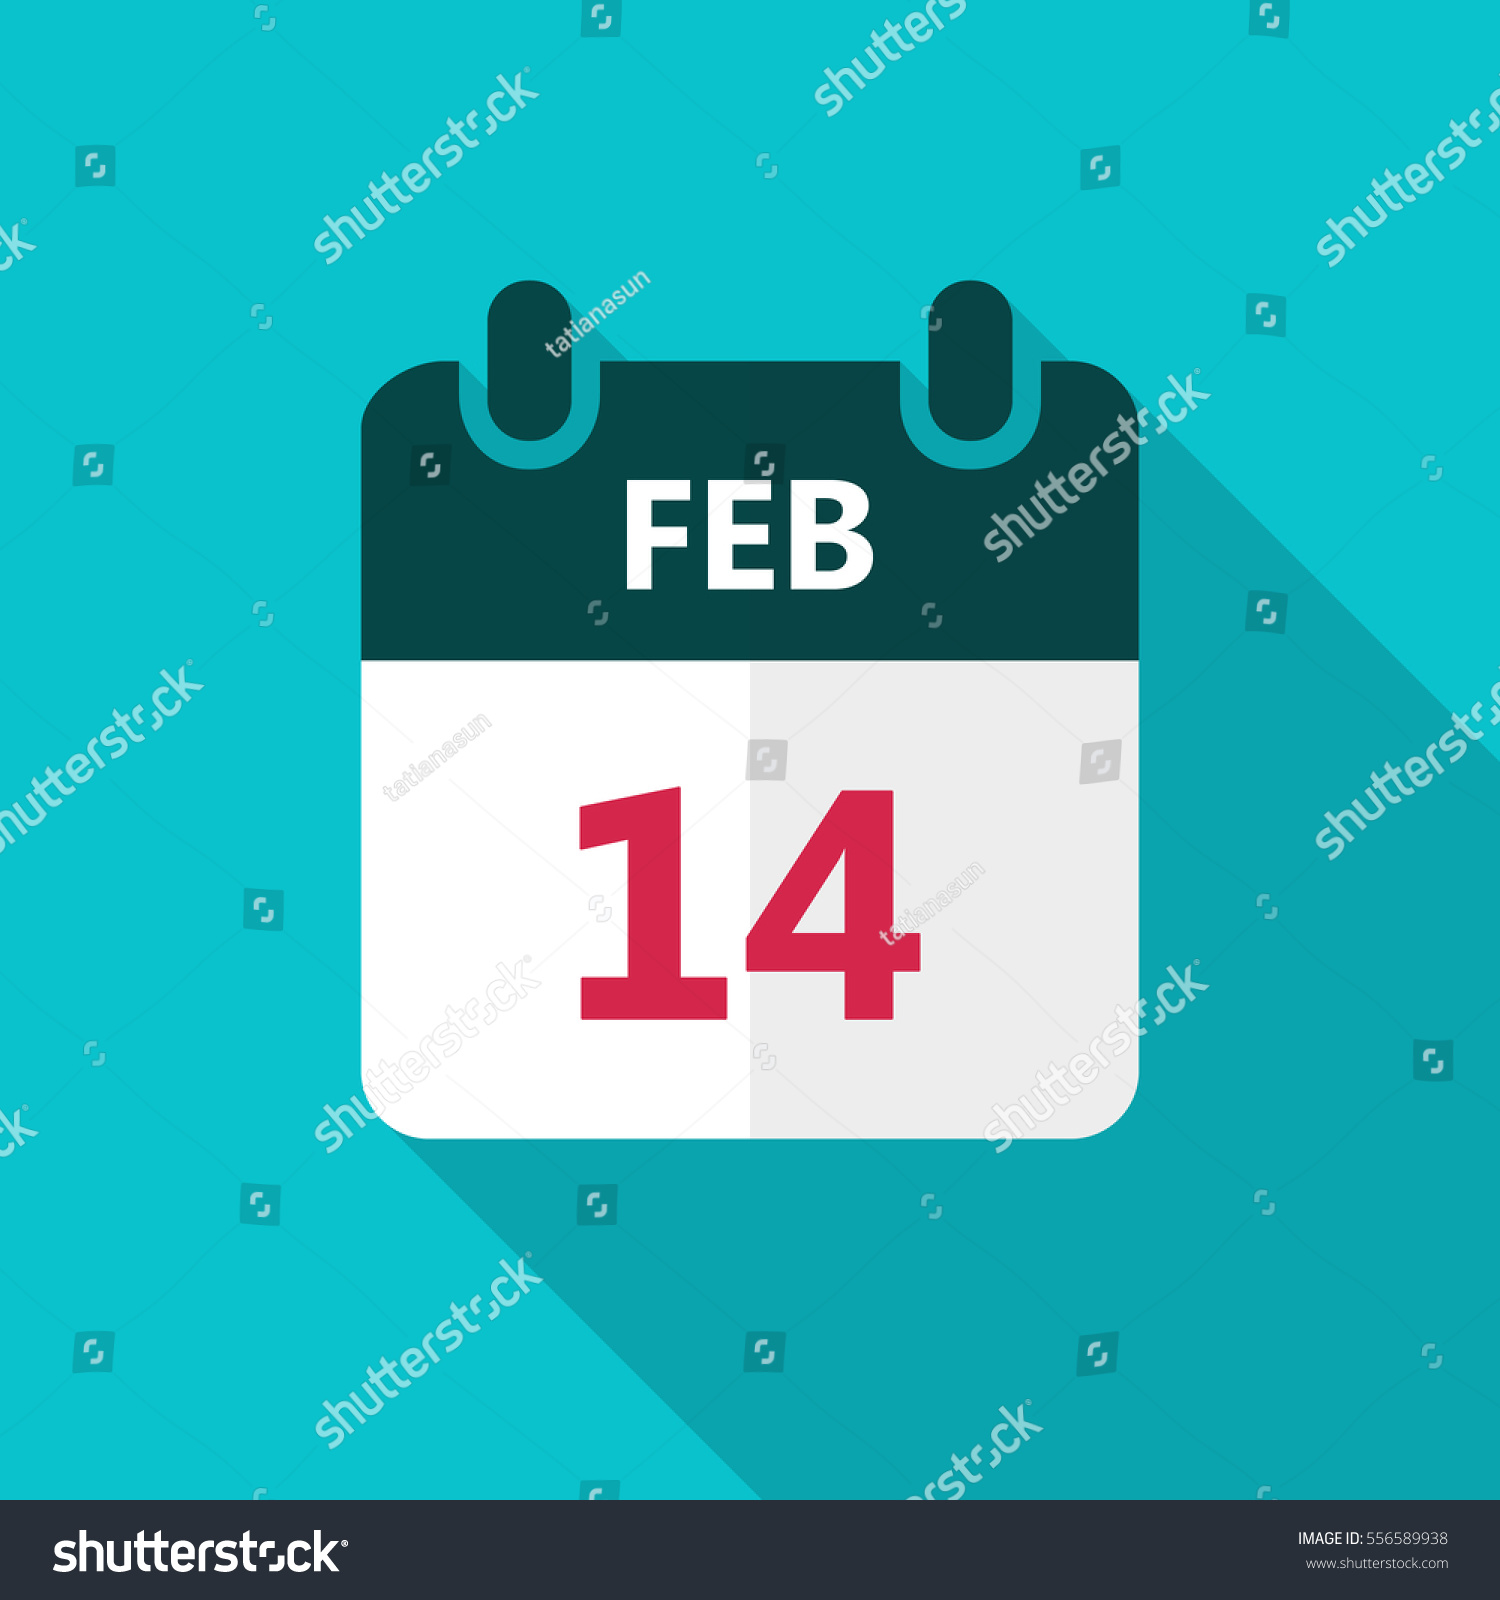 February Calendar Illustration : February calendar icon valentines day stock vector